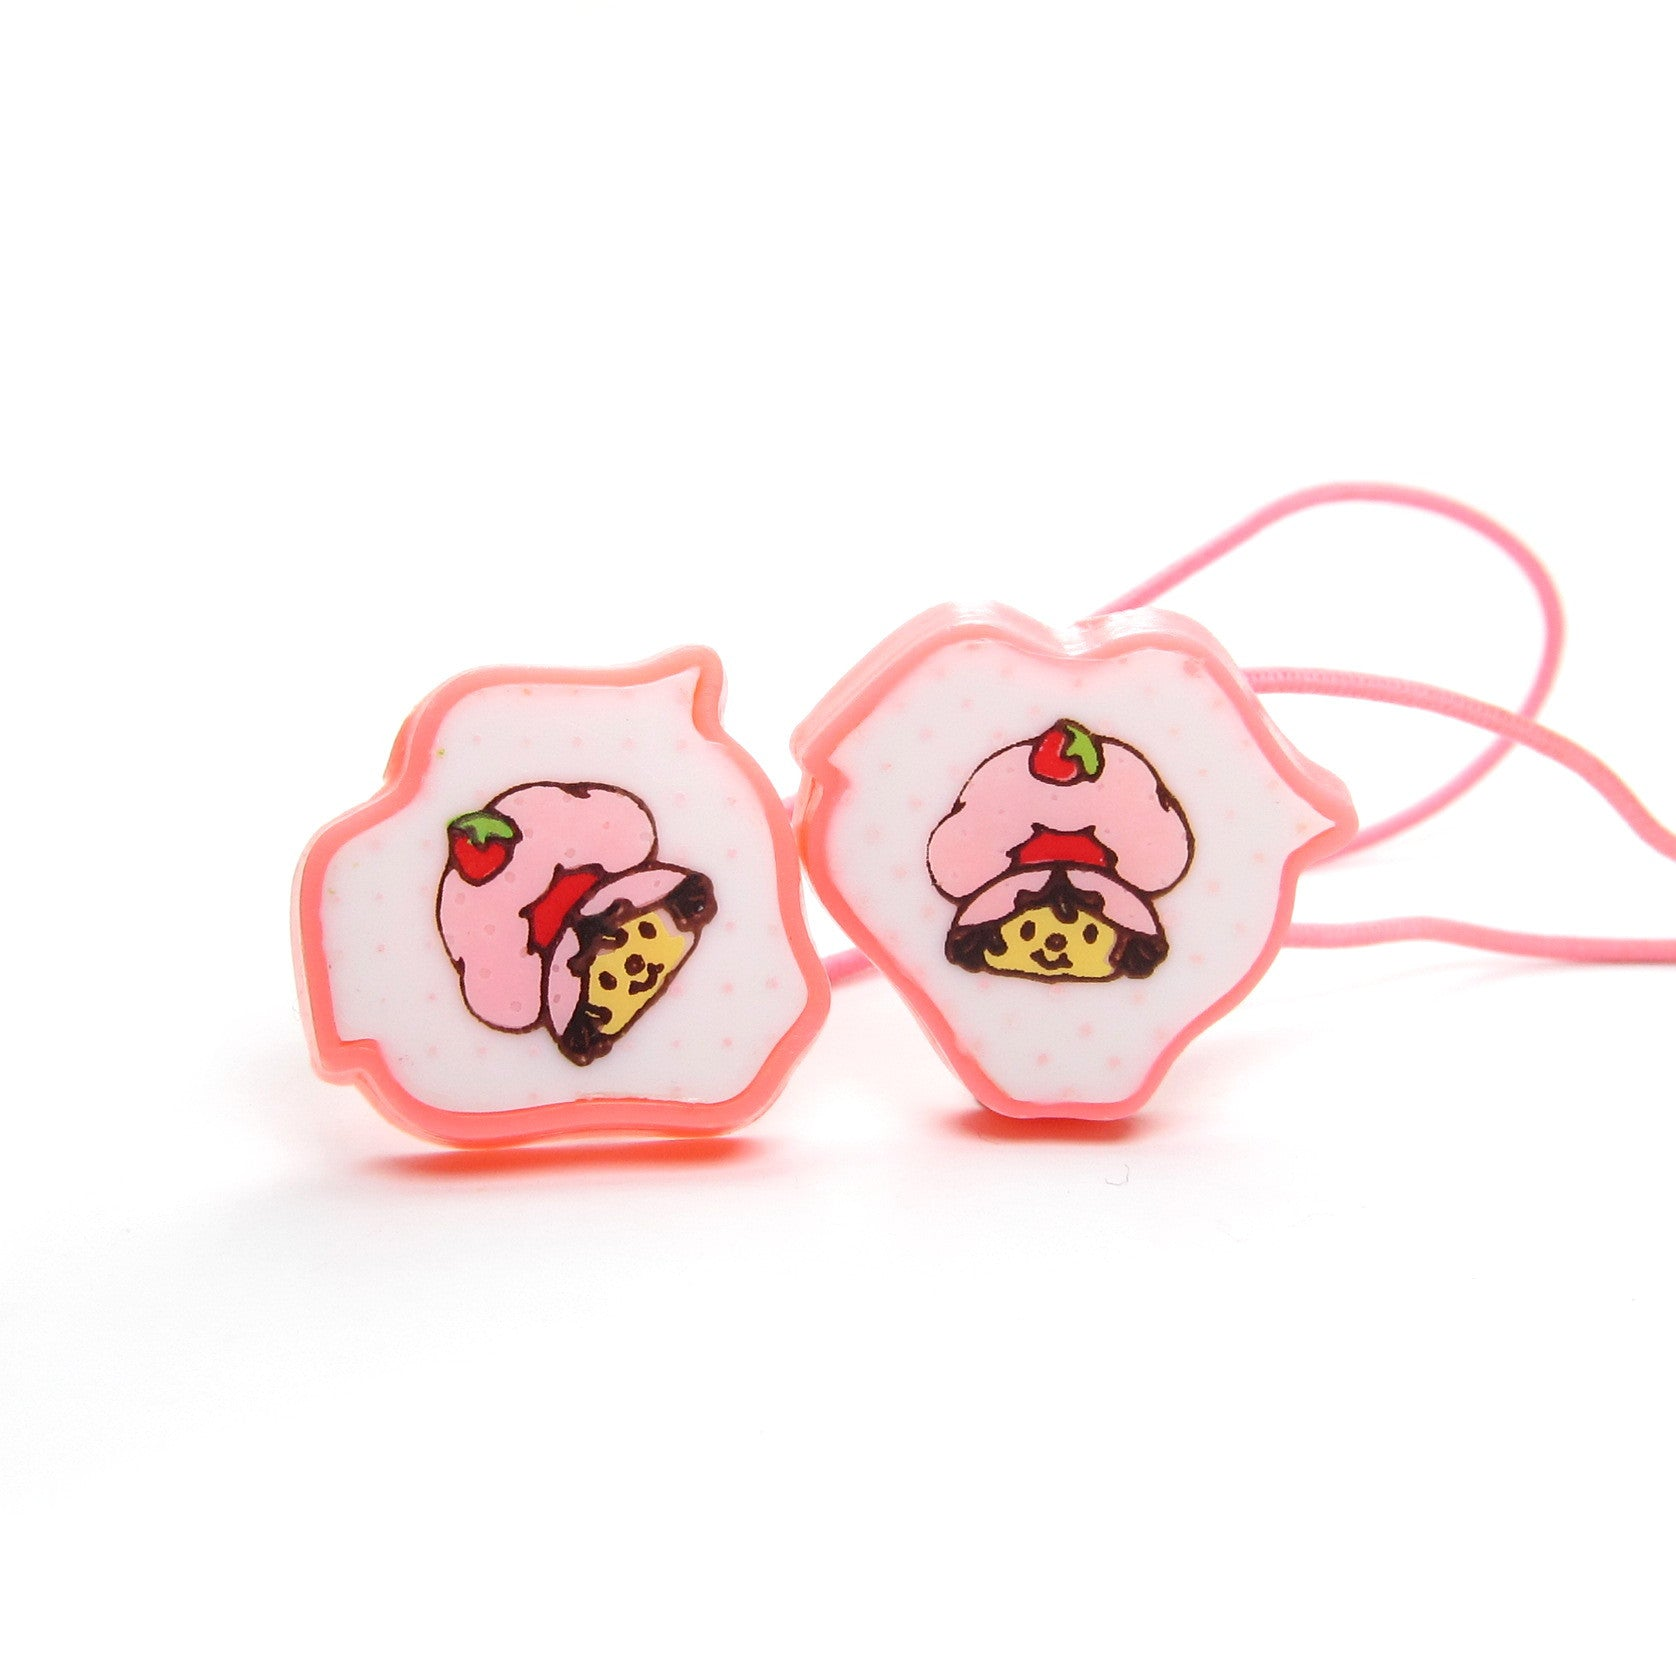 Strawberry Shortcake hair elastics